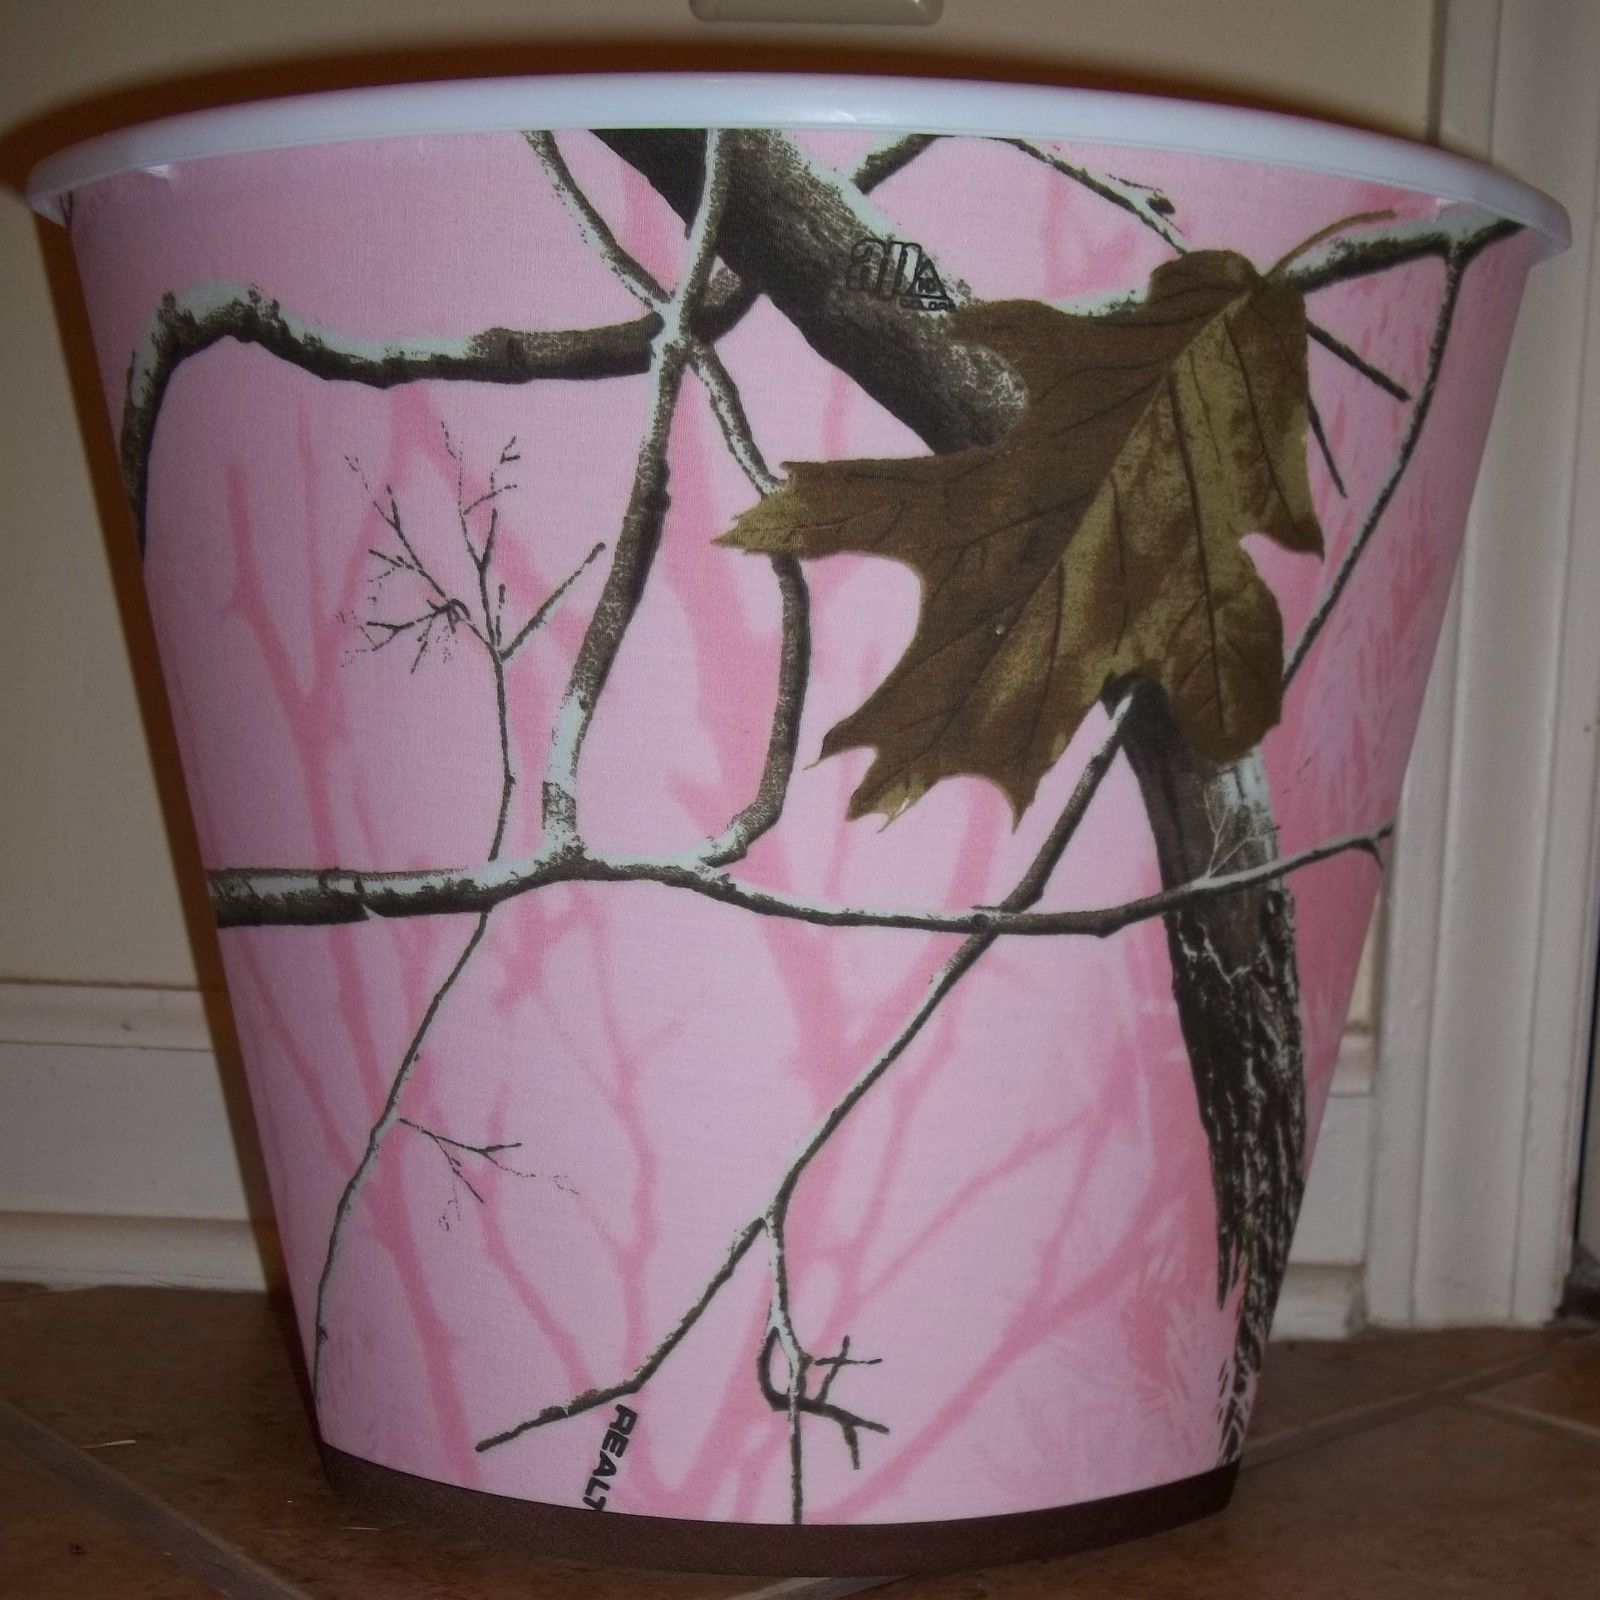 Delightful Pink AP RealTree Camo Wastebasket Made With Girls Fabric Real Tree  Camoflague Picclick.com